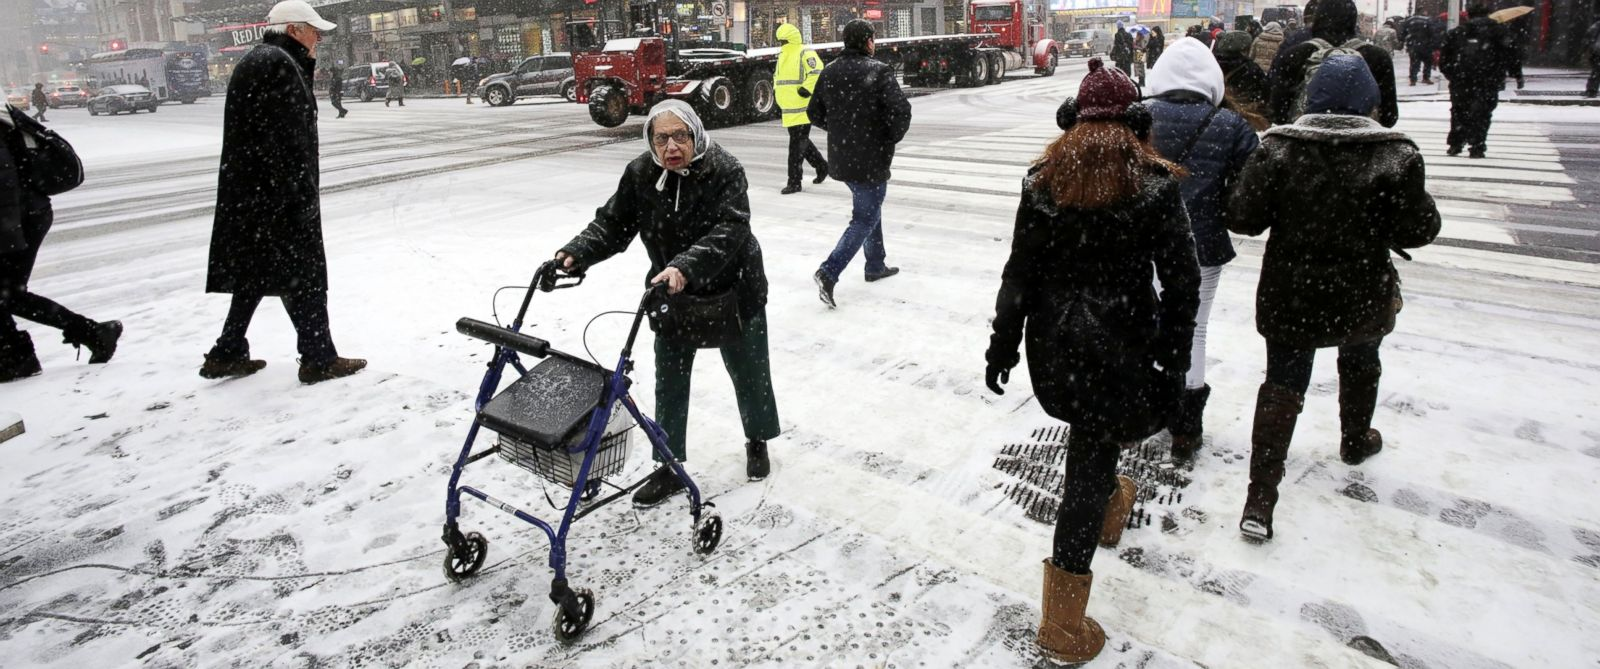 PHOTO: Pedestrians make their way through a snowfall, Jan. 21, 2014 in New Yorks Times Square.